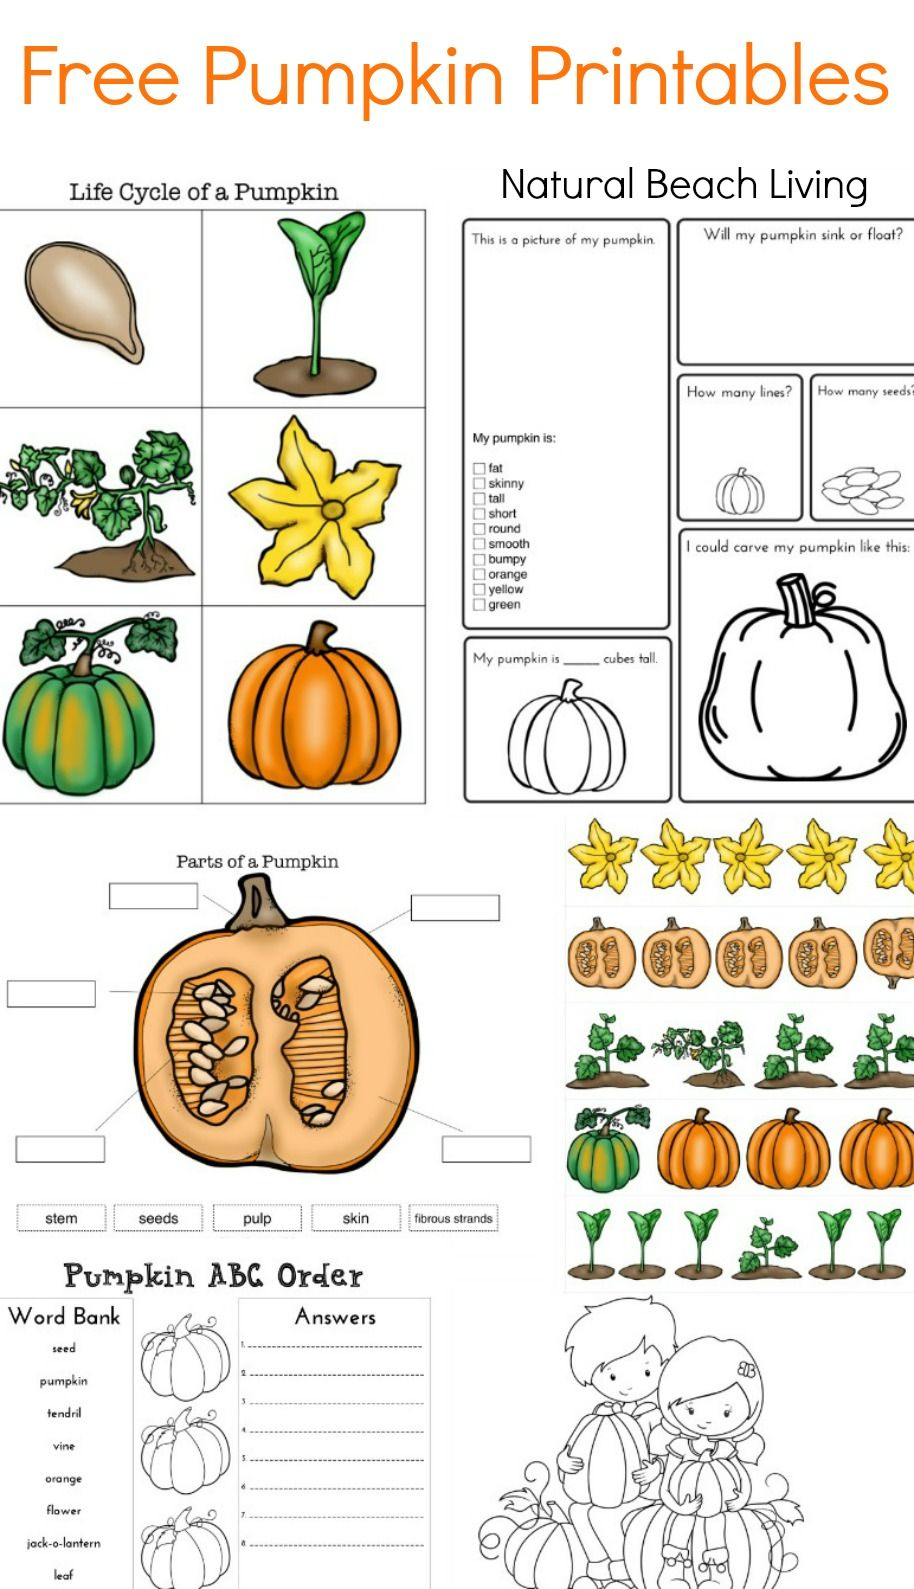 The Perfect Pumpkin Activities for Kids - Natural Beach Living